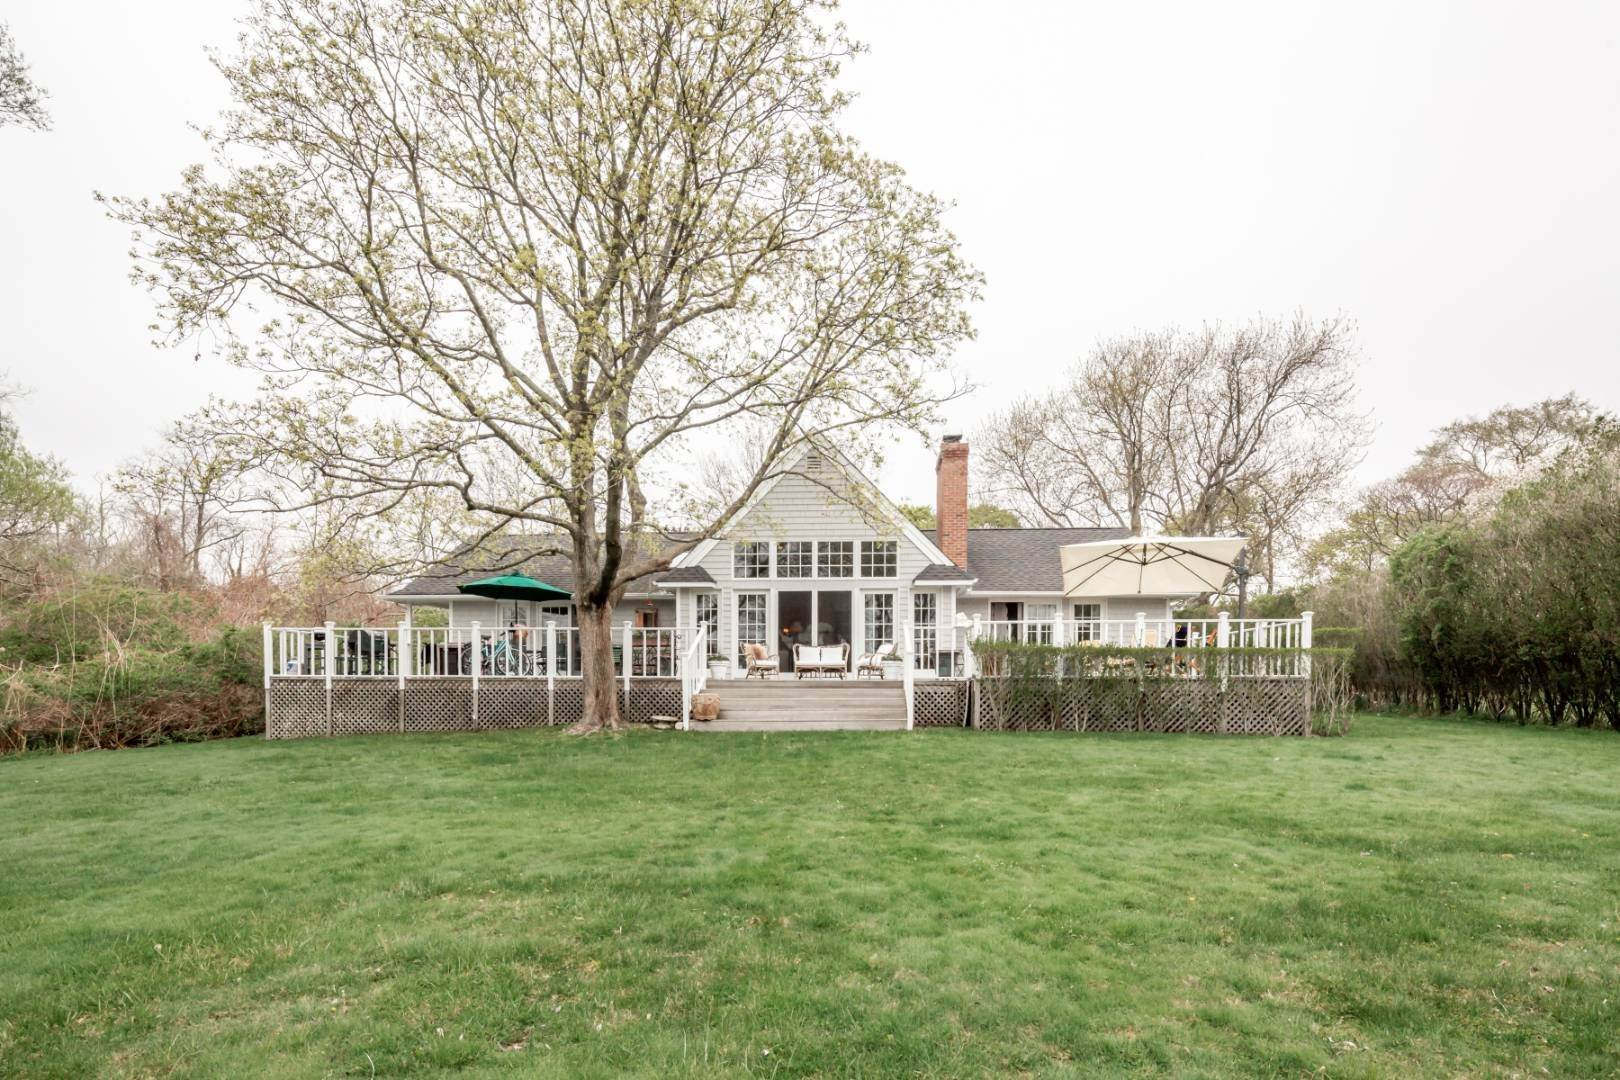 8. Single Family Home at Natural Beauty Of Heady Creek Unfolds In This 3 Bedroom Home Southampton, NY 11968